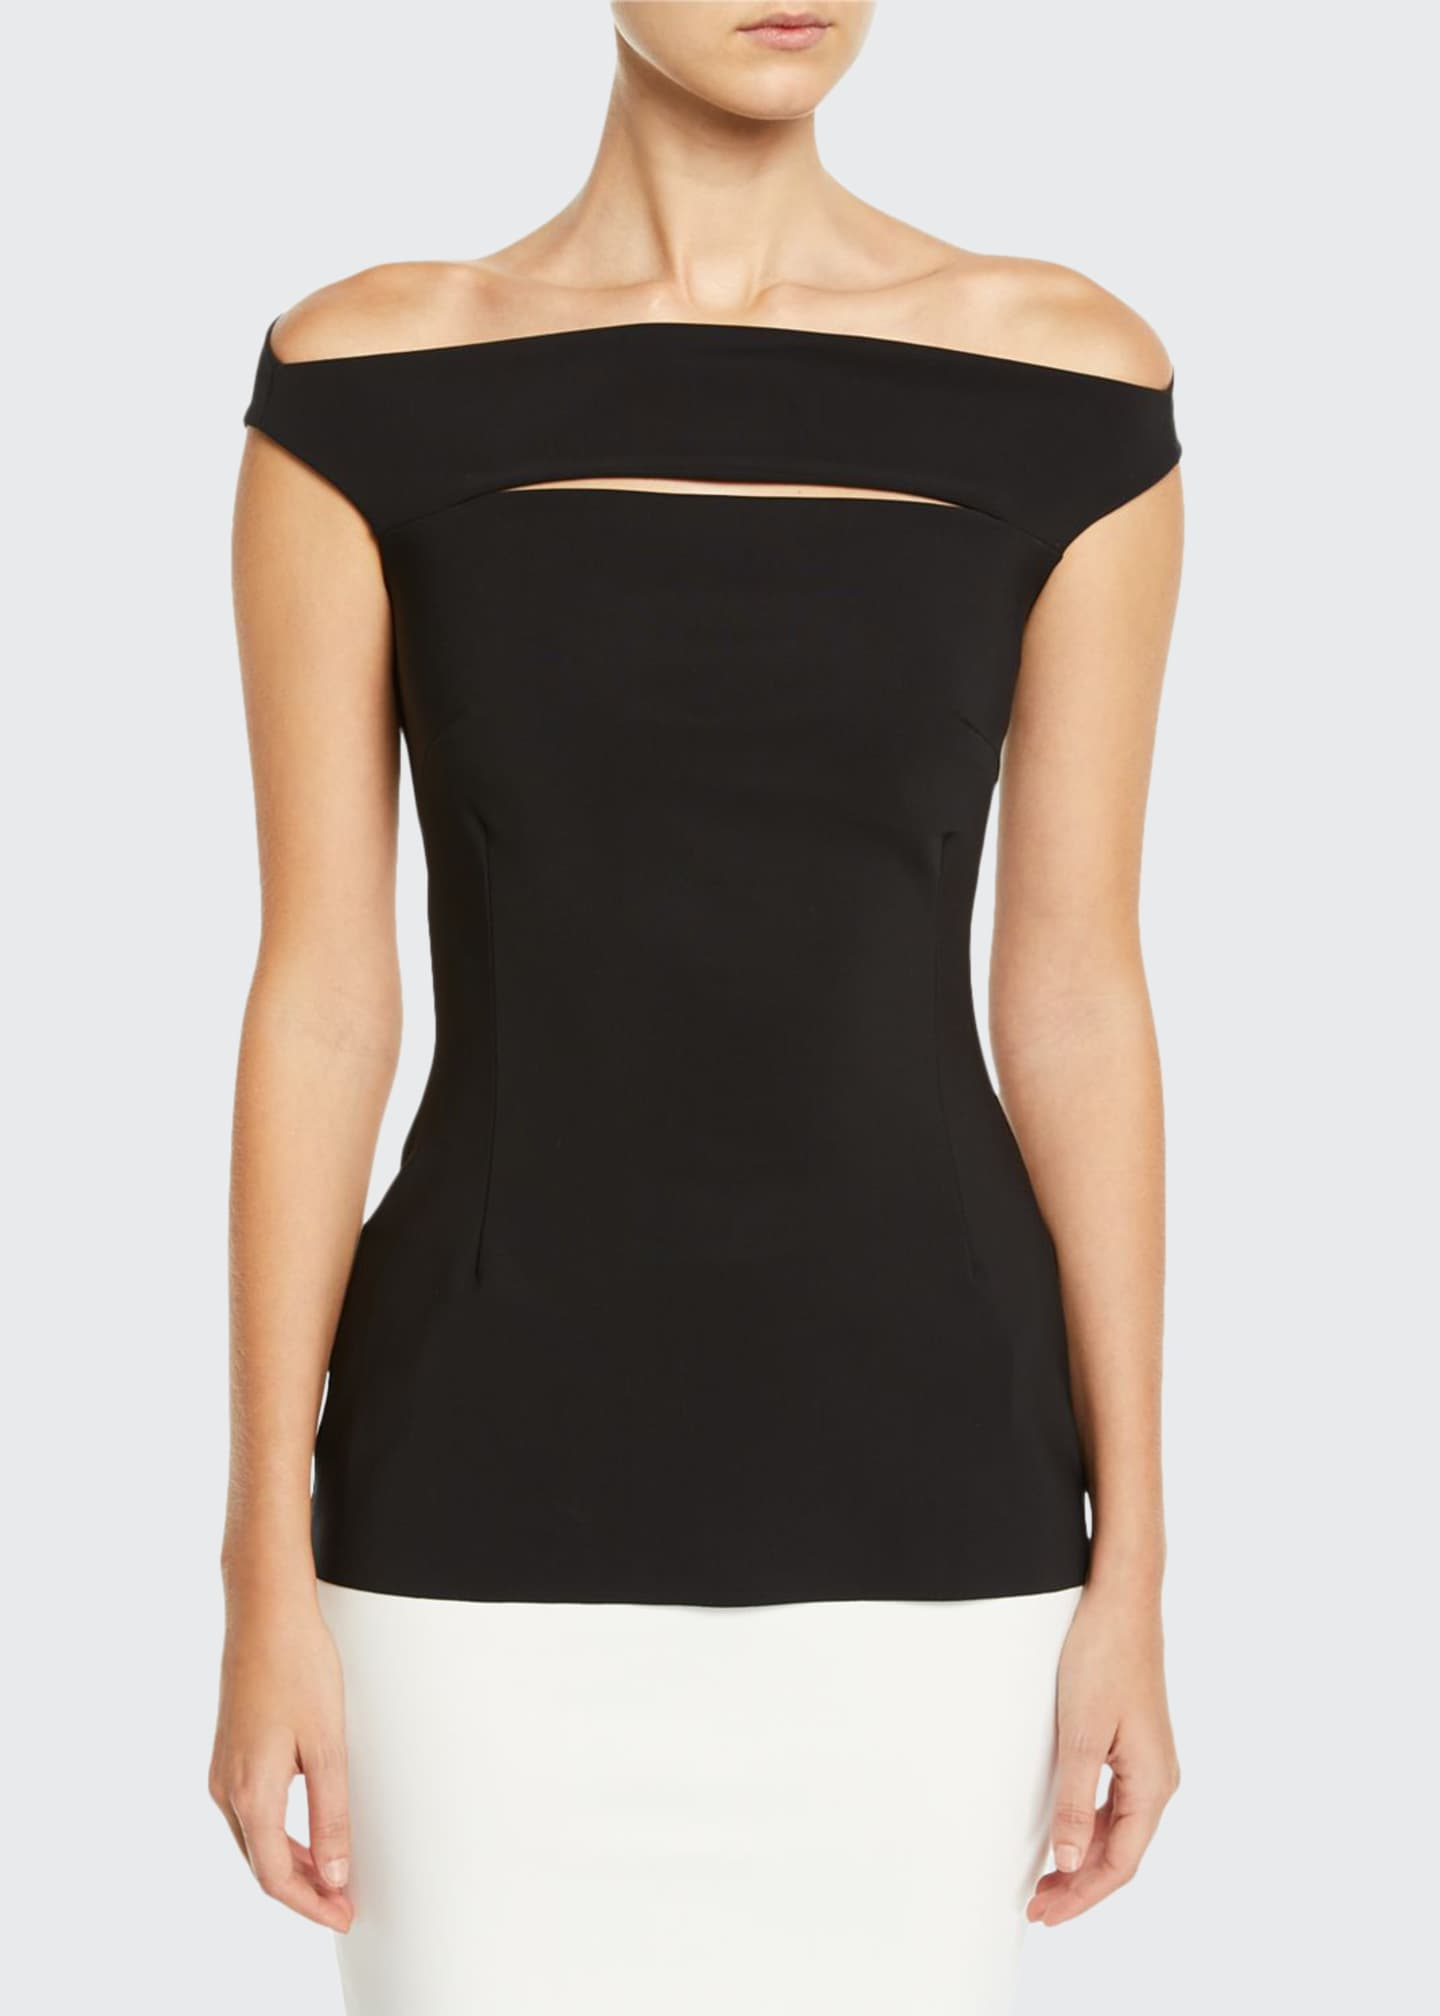 Chiara Boni La Petite Robe Karen Slit-Front Off-the-Shoulder